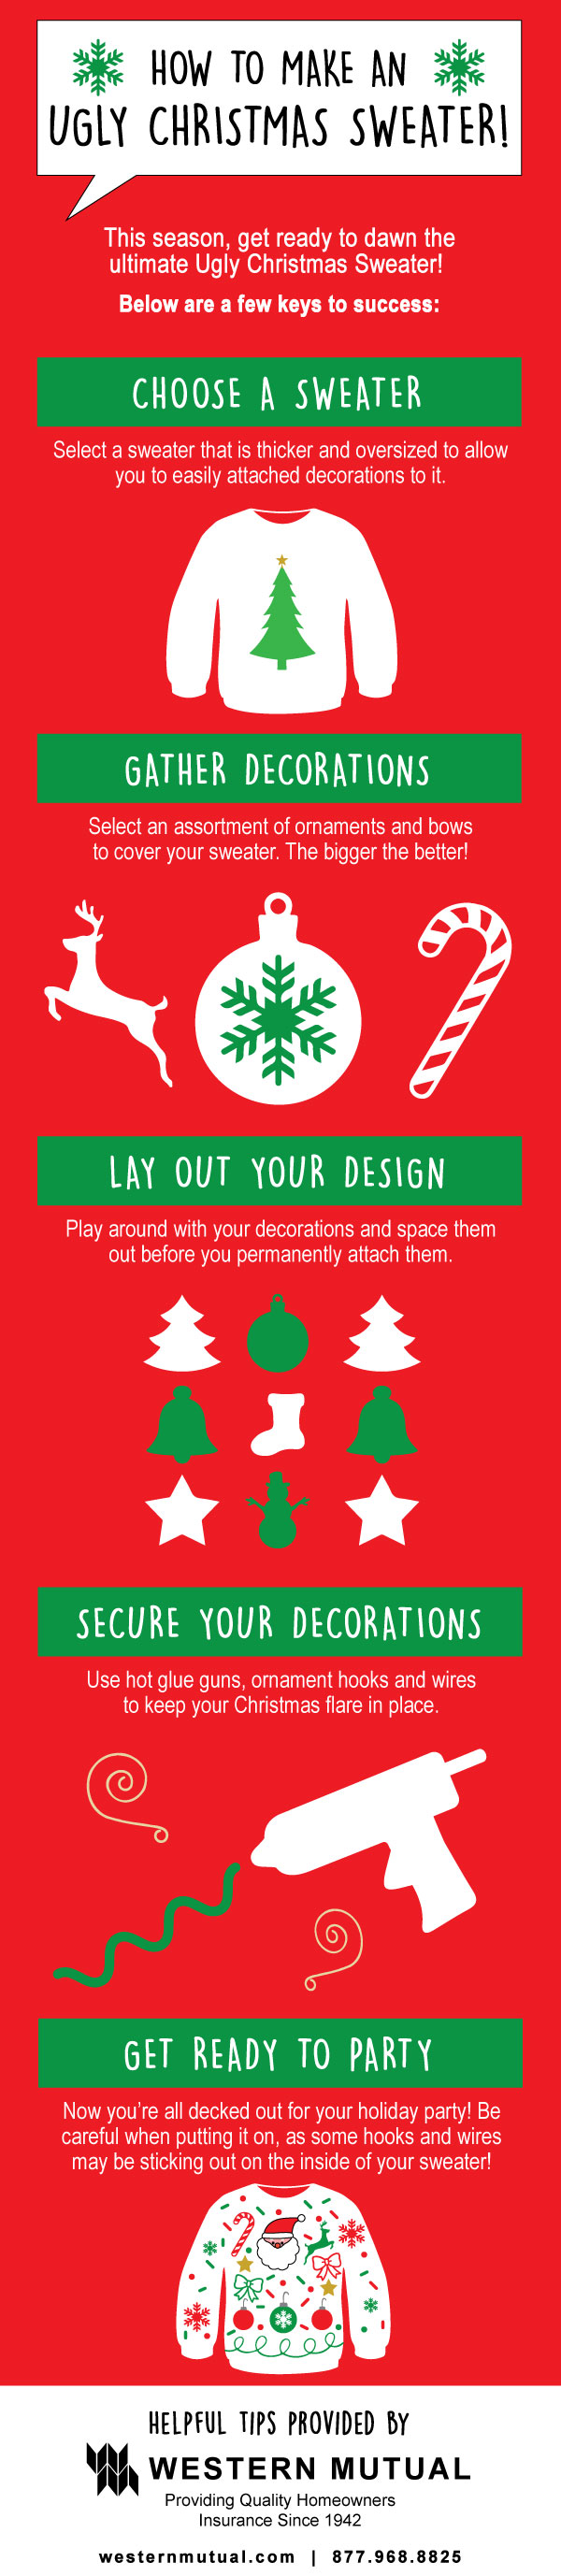 WM_Ugly-Christmas-Sweater-Infographic_2019